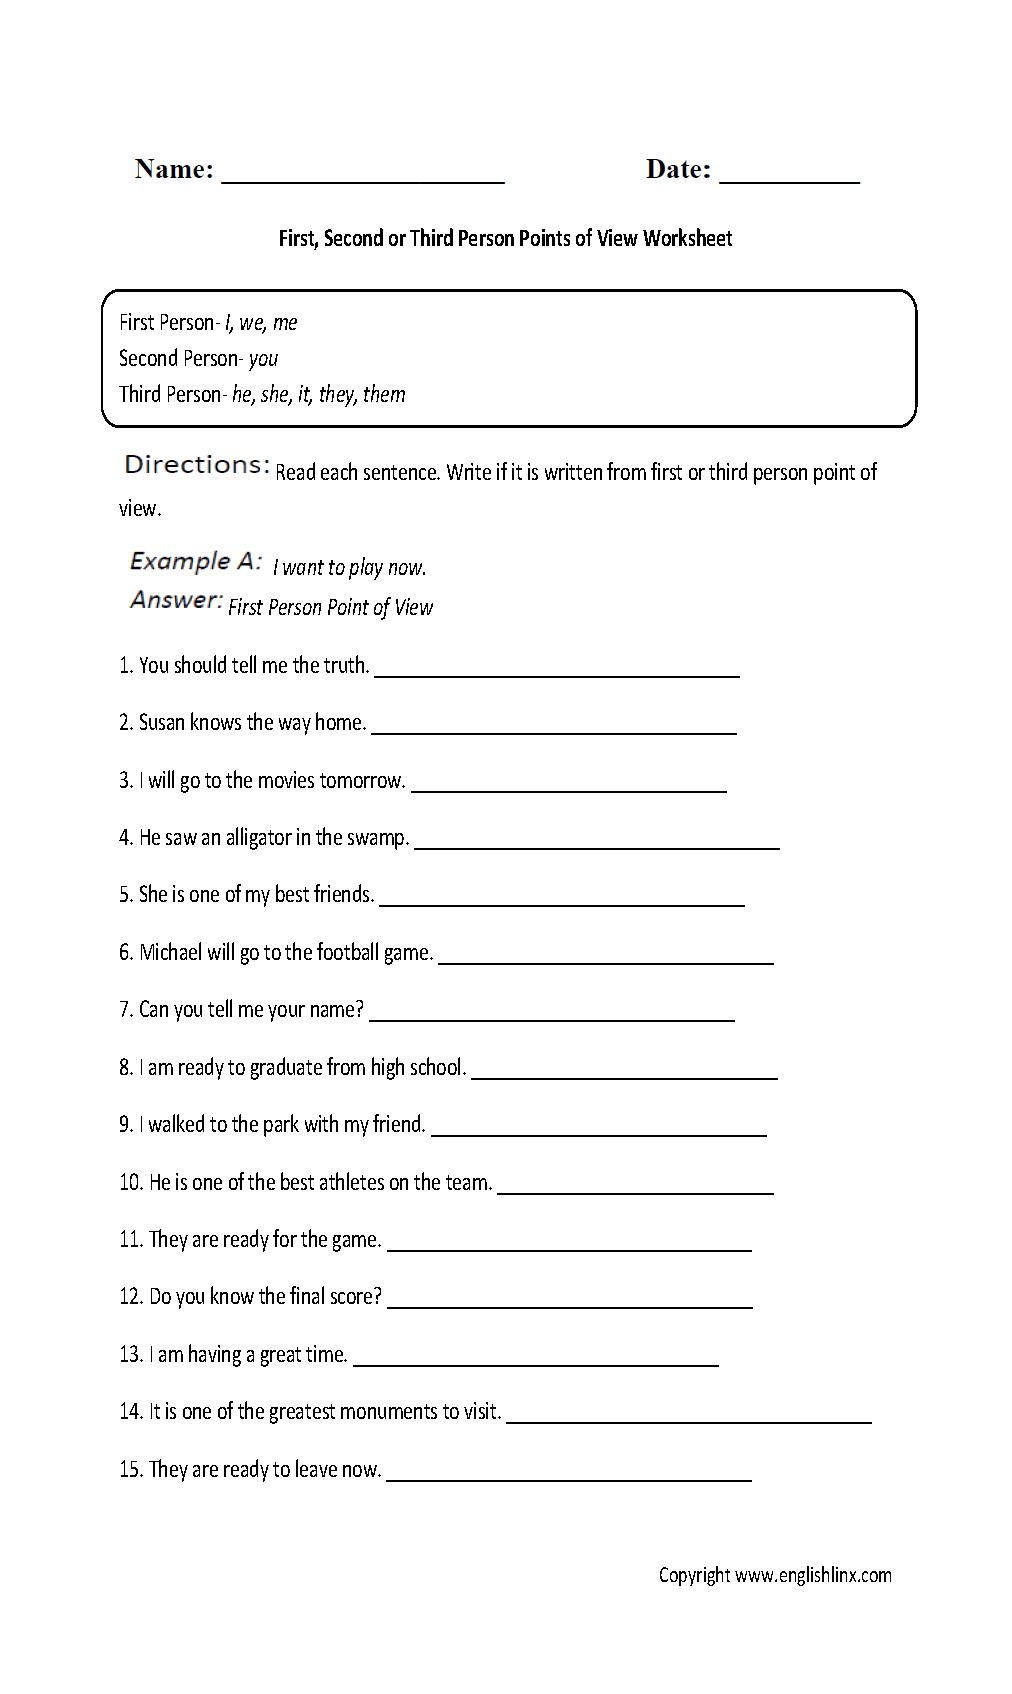 Weirdmailus  Nice Englishlinxcom  Point Of View Worksheets With Hot Point Of View Worksheet With Beautiful Nutrition Worksheets For Middle School Also Adding Subtracting Mixed Numbers Worksheet In Addition Molecular Shape Worksheet And Ecology Vocabulary Worksheet As Well As Numbers  Worksheets Additionally Fifth Grade Writing Worksheets From Englishlinxcom With Weirdmailus  Hot Englishlinxcom  Point Of View Worksheets With Beautiful Point Of View Worksheet And Nice Nutrition Worksheets For Middle School Also Adding Subtracting Mixed Numbers Worksheet In Addition Molecular Shape Worksheet From Englishlinxcom